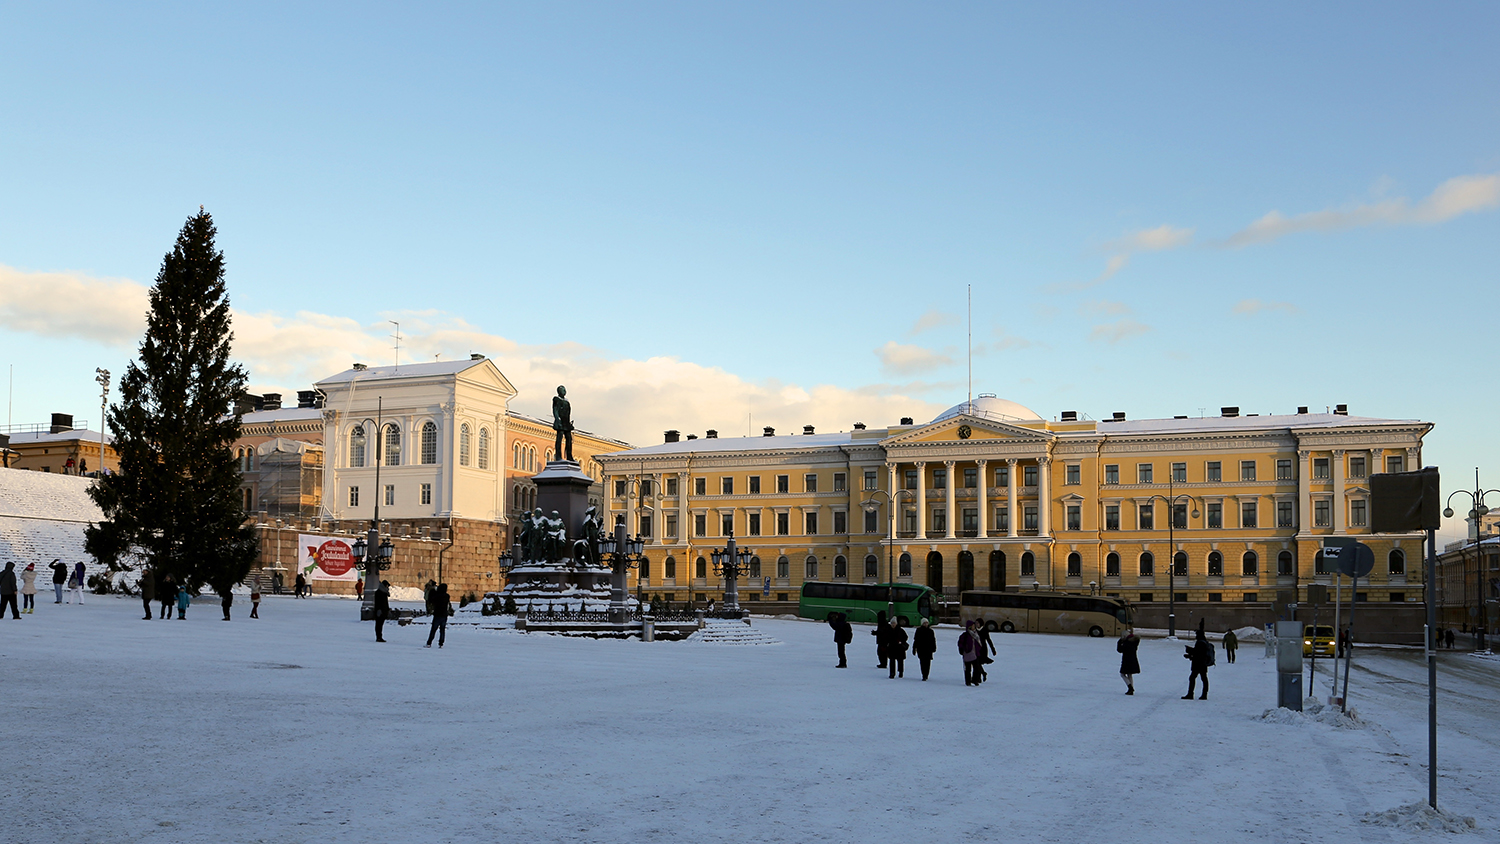 The Government Palace in Helsinki / Courtesy of Jukka